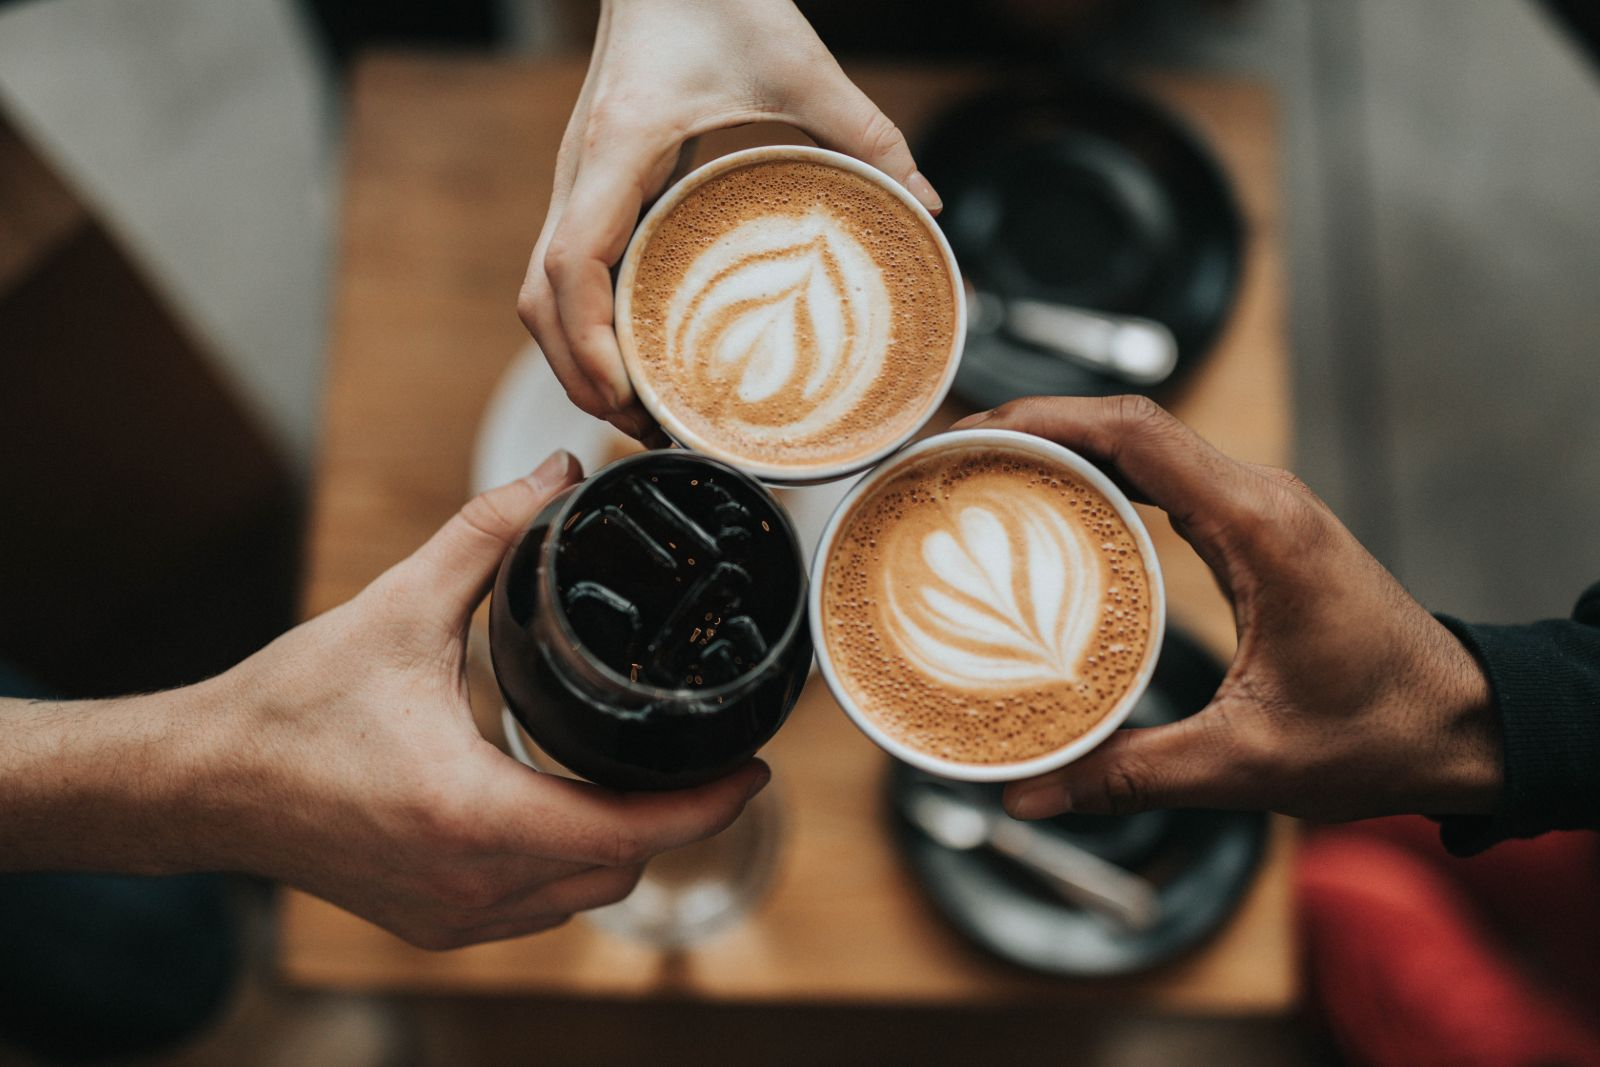 mothers meeting for coffee to talk to reduce stress